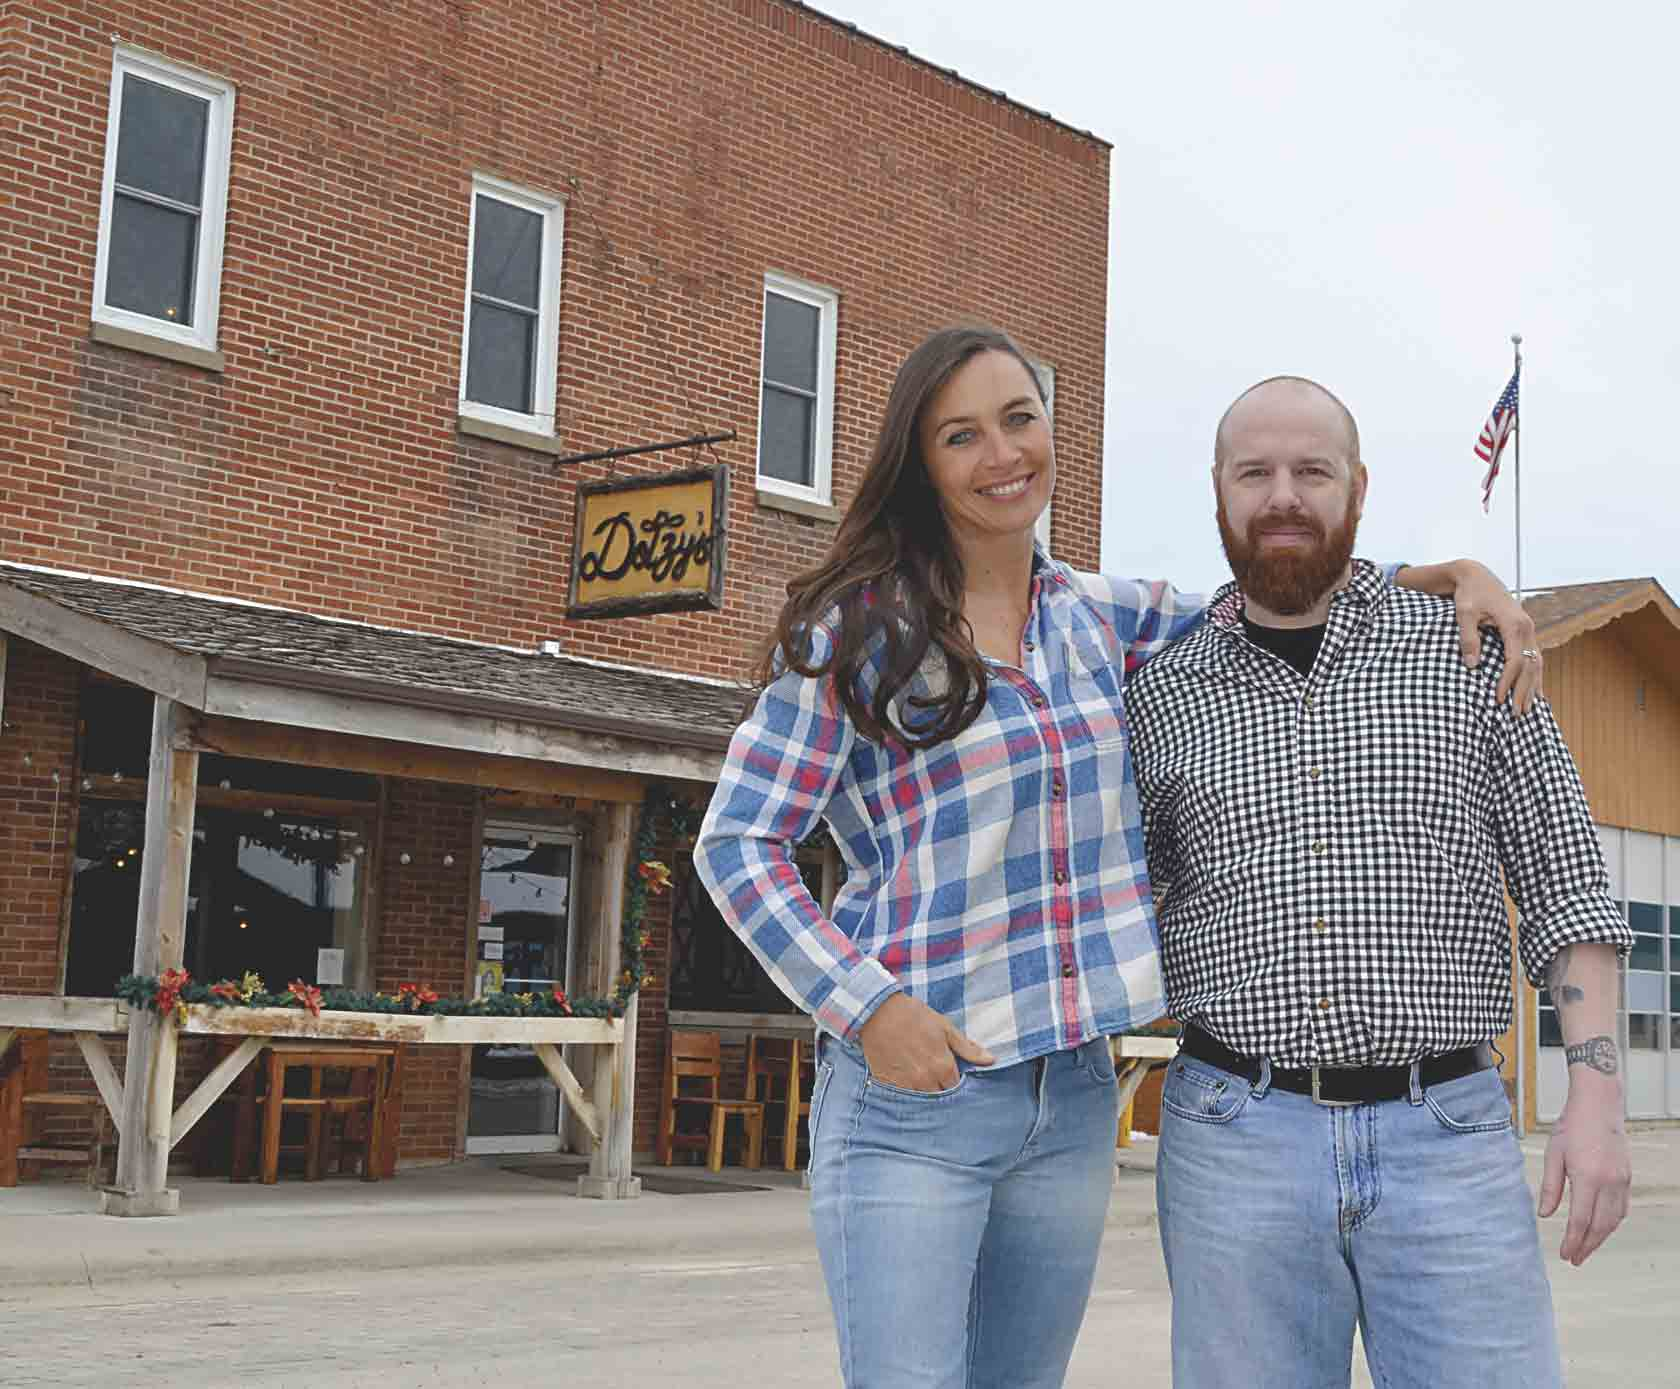 Danielle Dotzenrod (left) opened Dotzy's on March 12, 2013. On Dotzy's fifth birthday last Monday, she handed over the local restaurant to new owner Michael Ellison, who has been working as a chef at the restaurant. Chris DeBack photos 	Dotzy's torch...